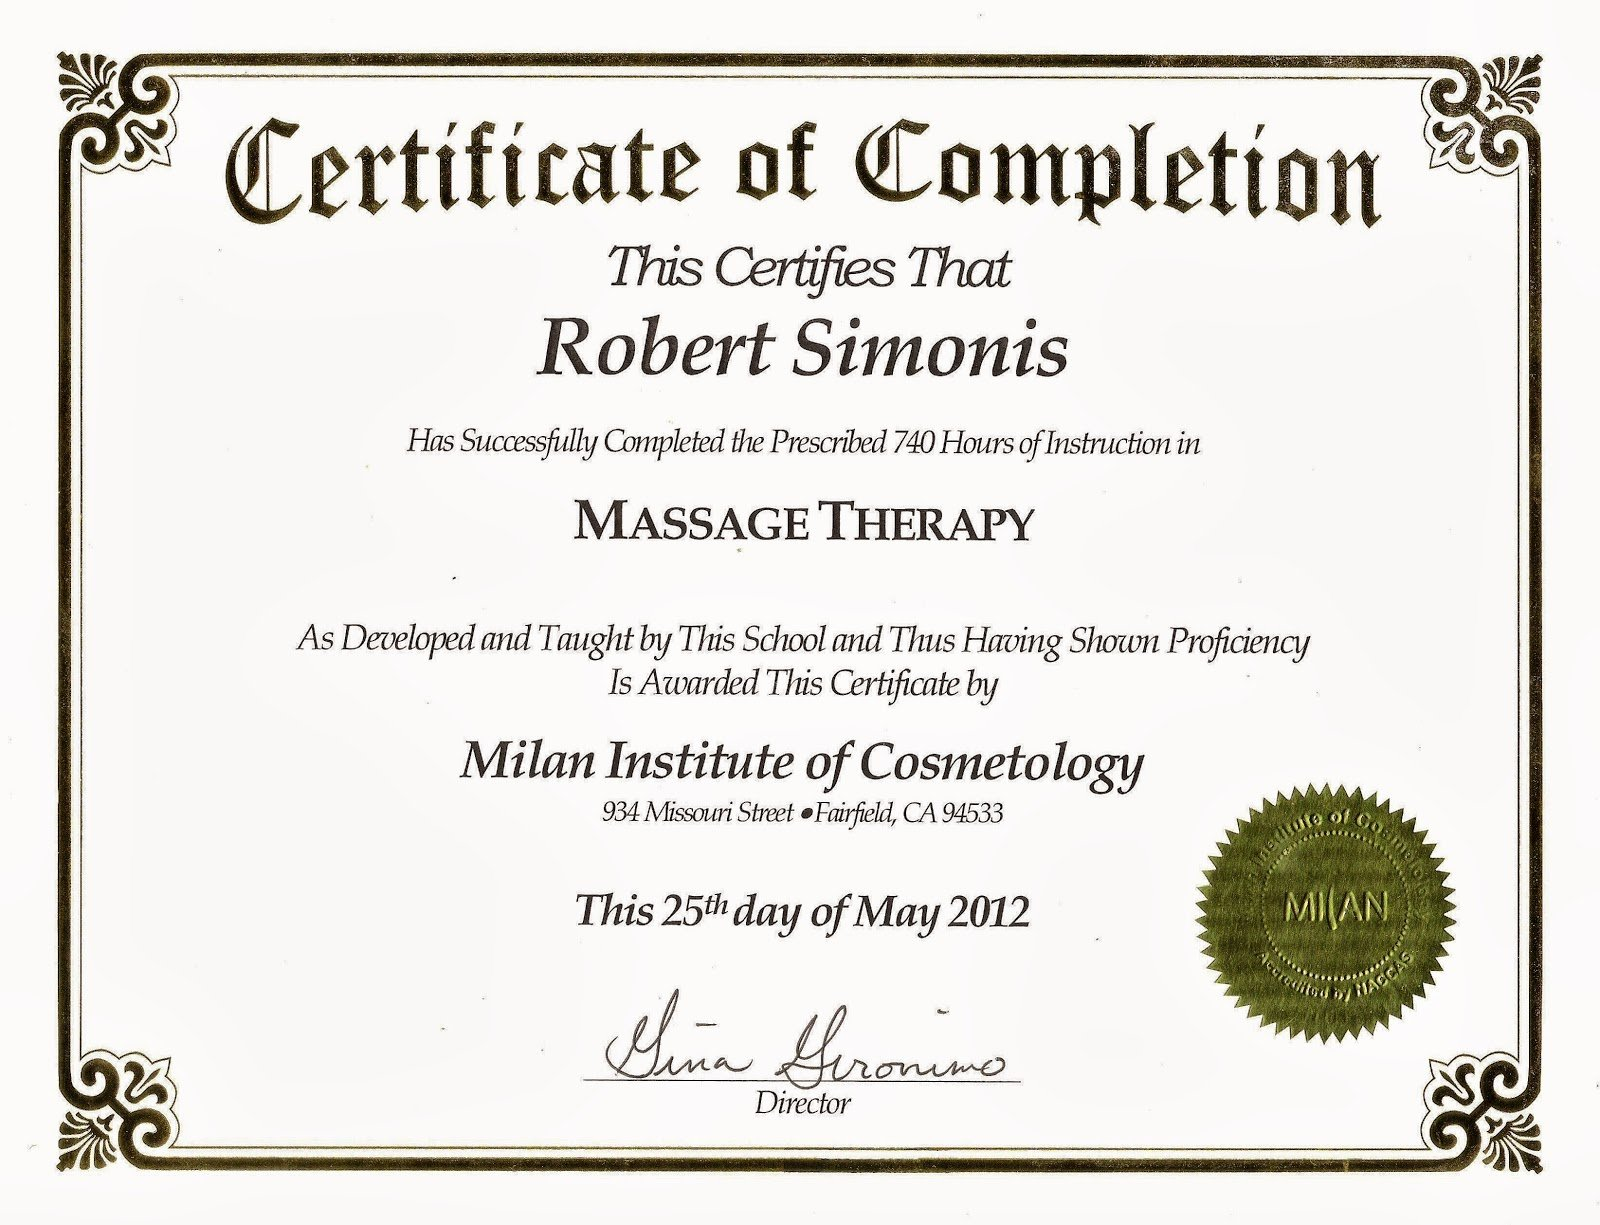 Certificate Of Completion Images Elegant Lavender Skye Massage therapy